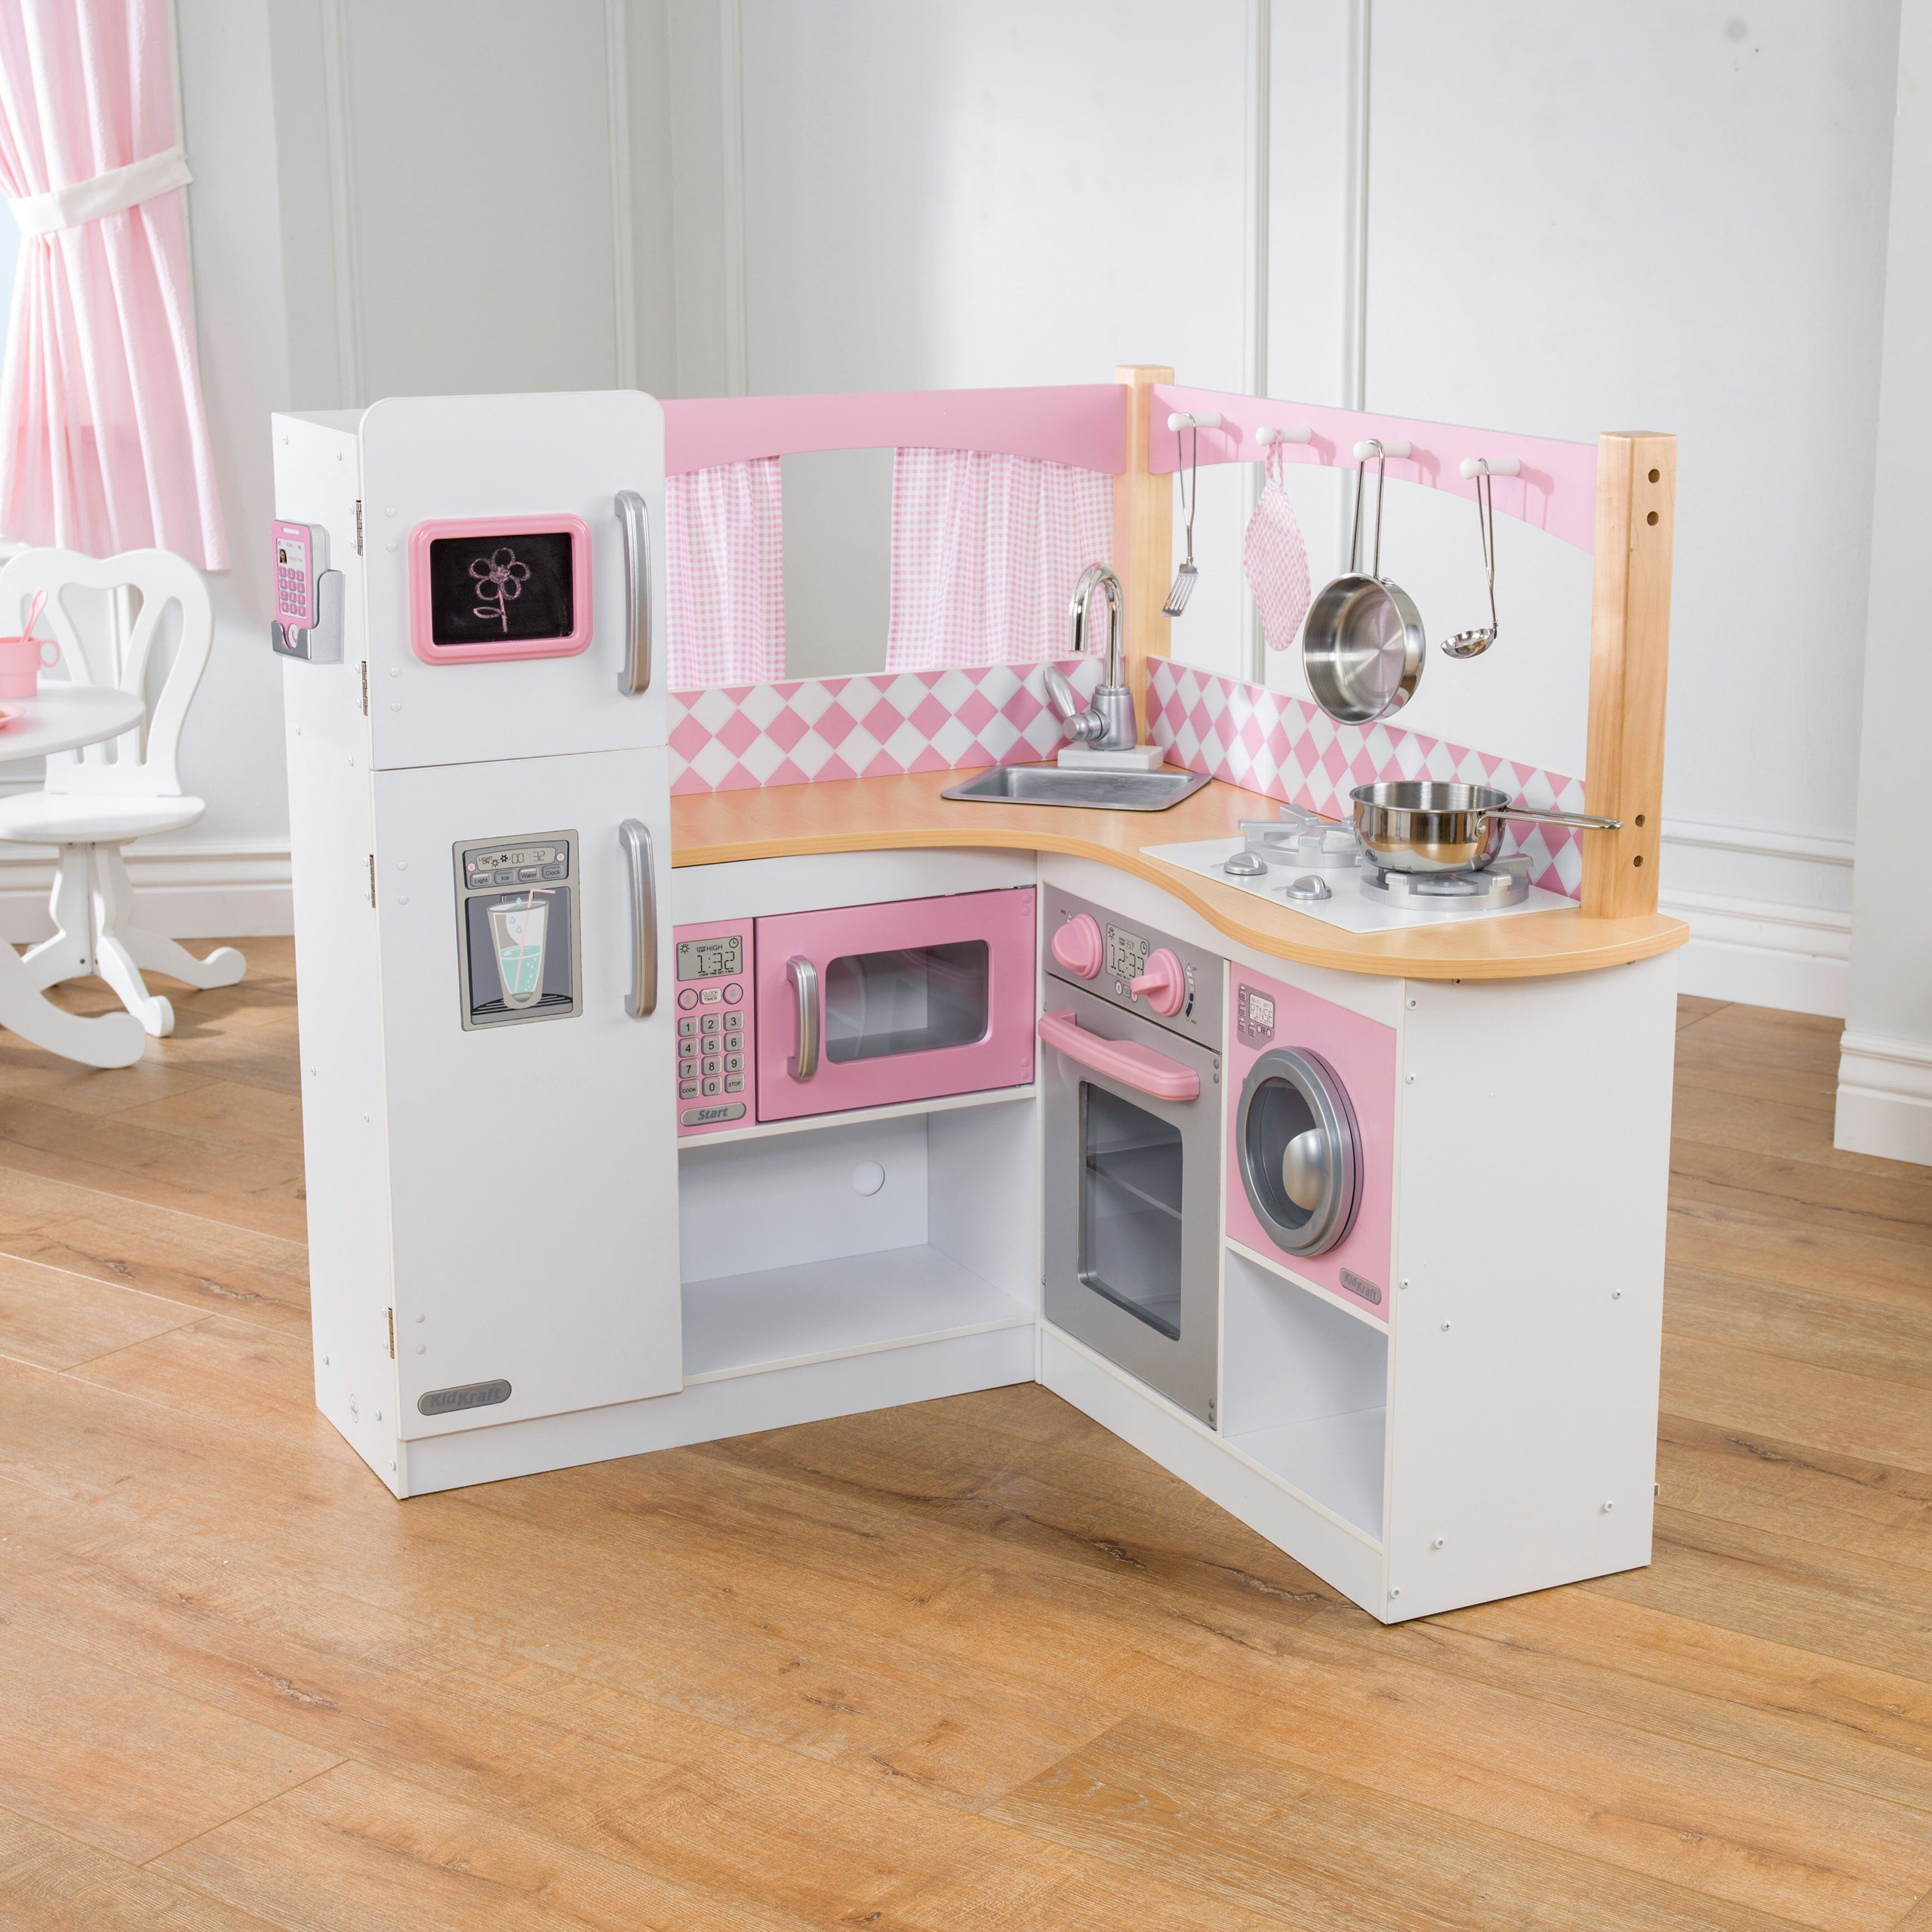 10 Best Play Kitchen Sets Accessories For 2021 Ideas On Foter